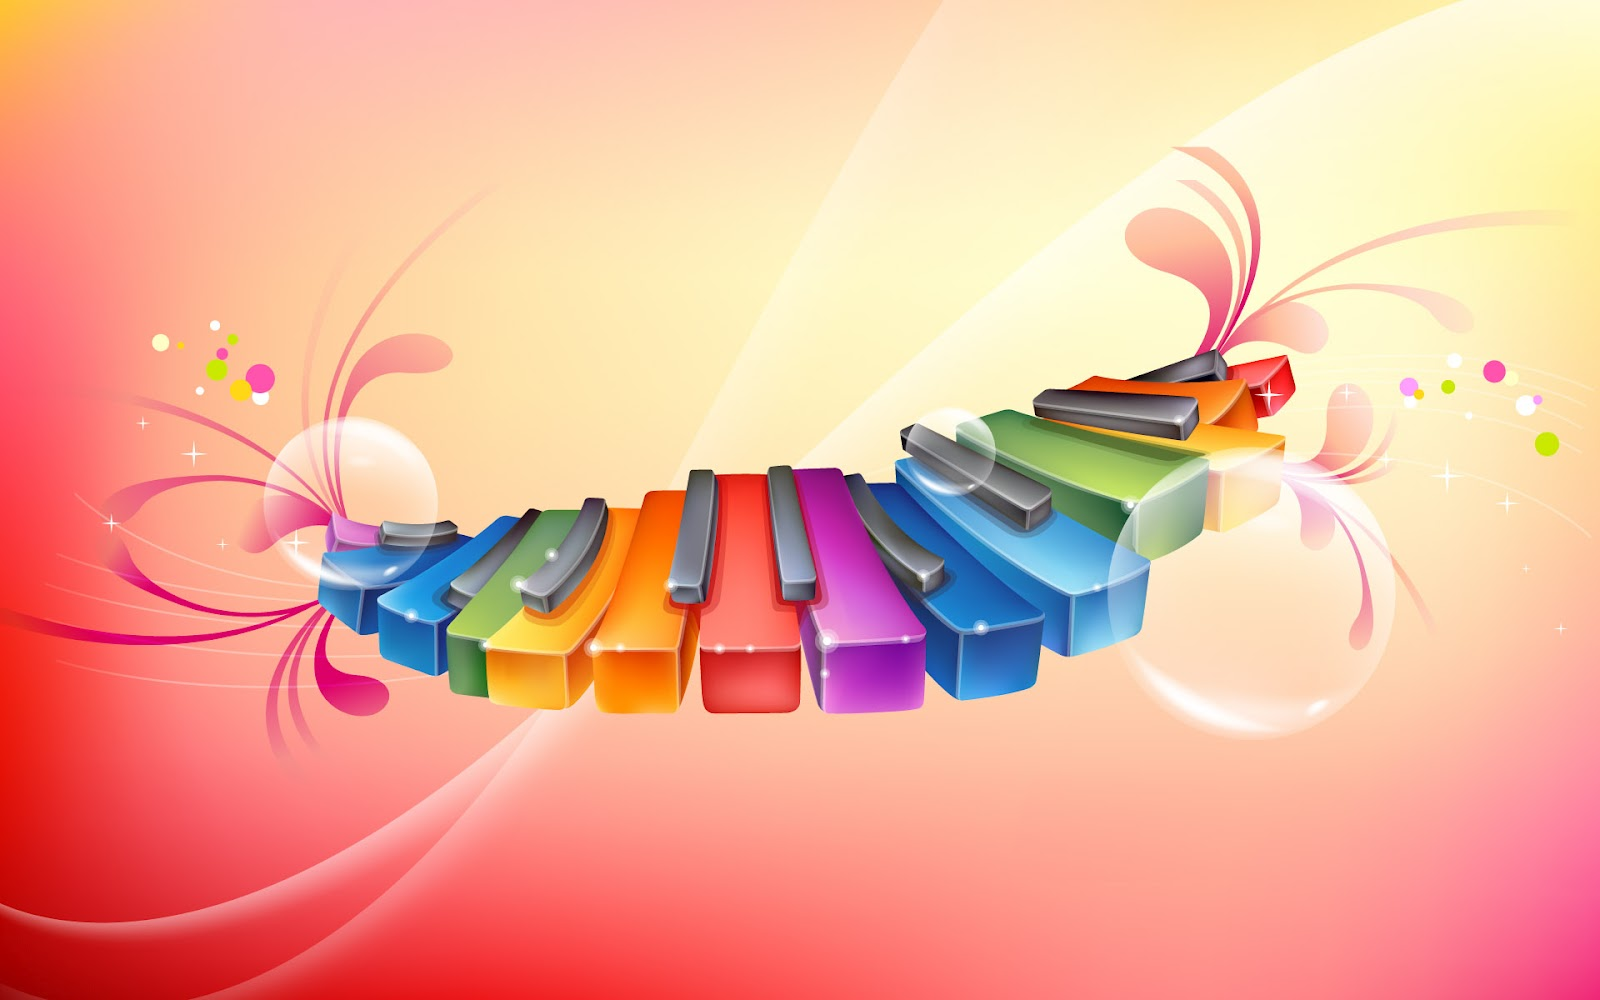 http://3.bp.blogspot.com/-vh_qwv_v1NM/T1A_hzFNnNI/AAAAAAAACcg/kY60aIOYltI/s1600/best-full-colours-Piano-wallpapers-2012.jpg